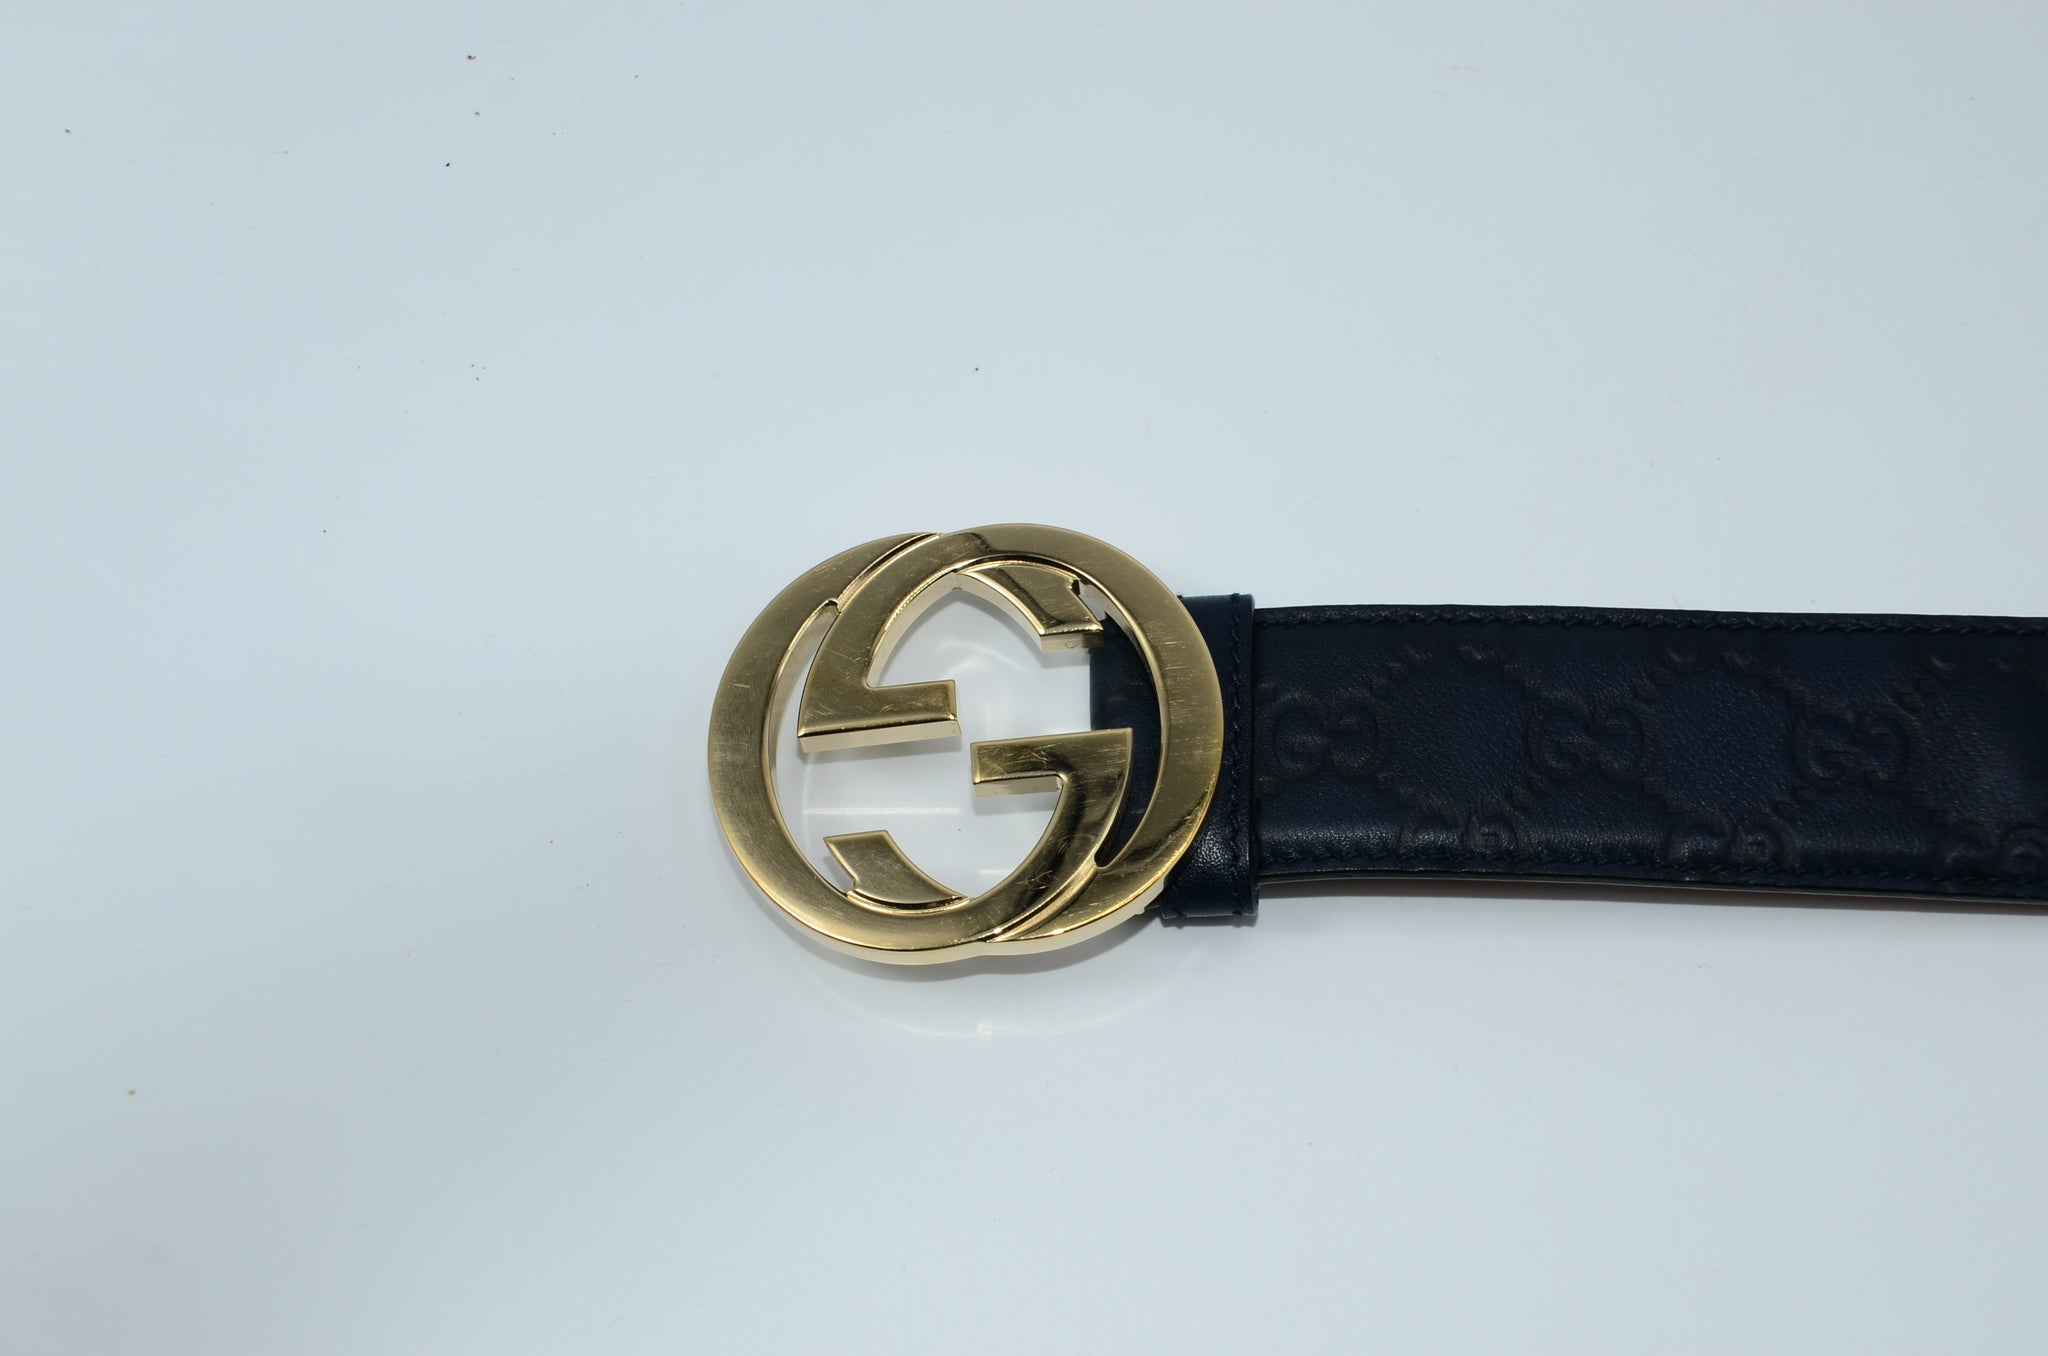 Gucci Signature leather belt - Iconics Preloved Luxury